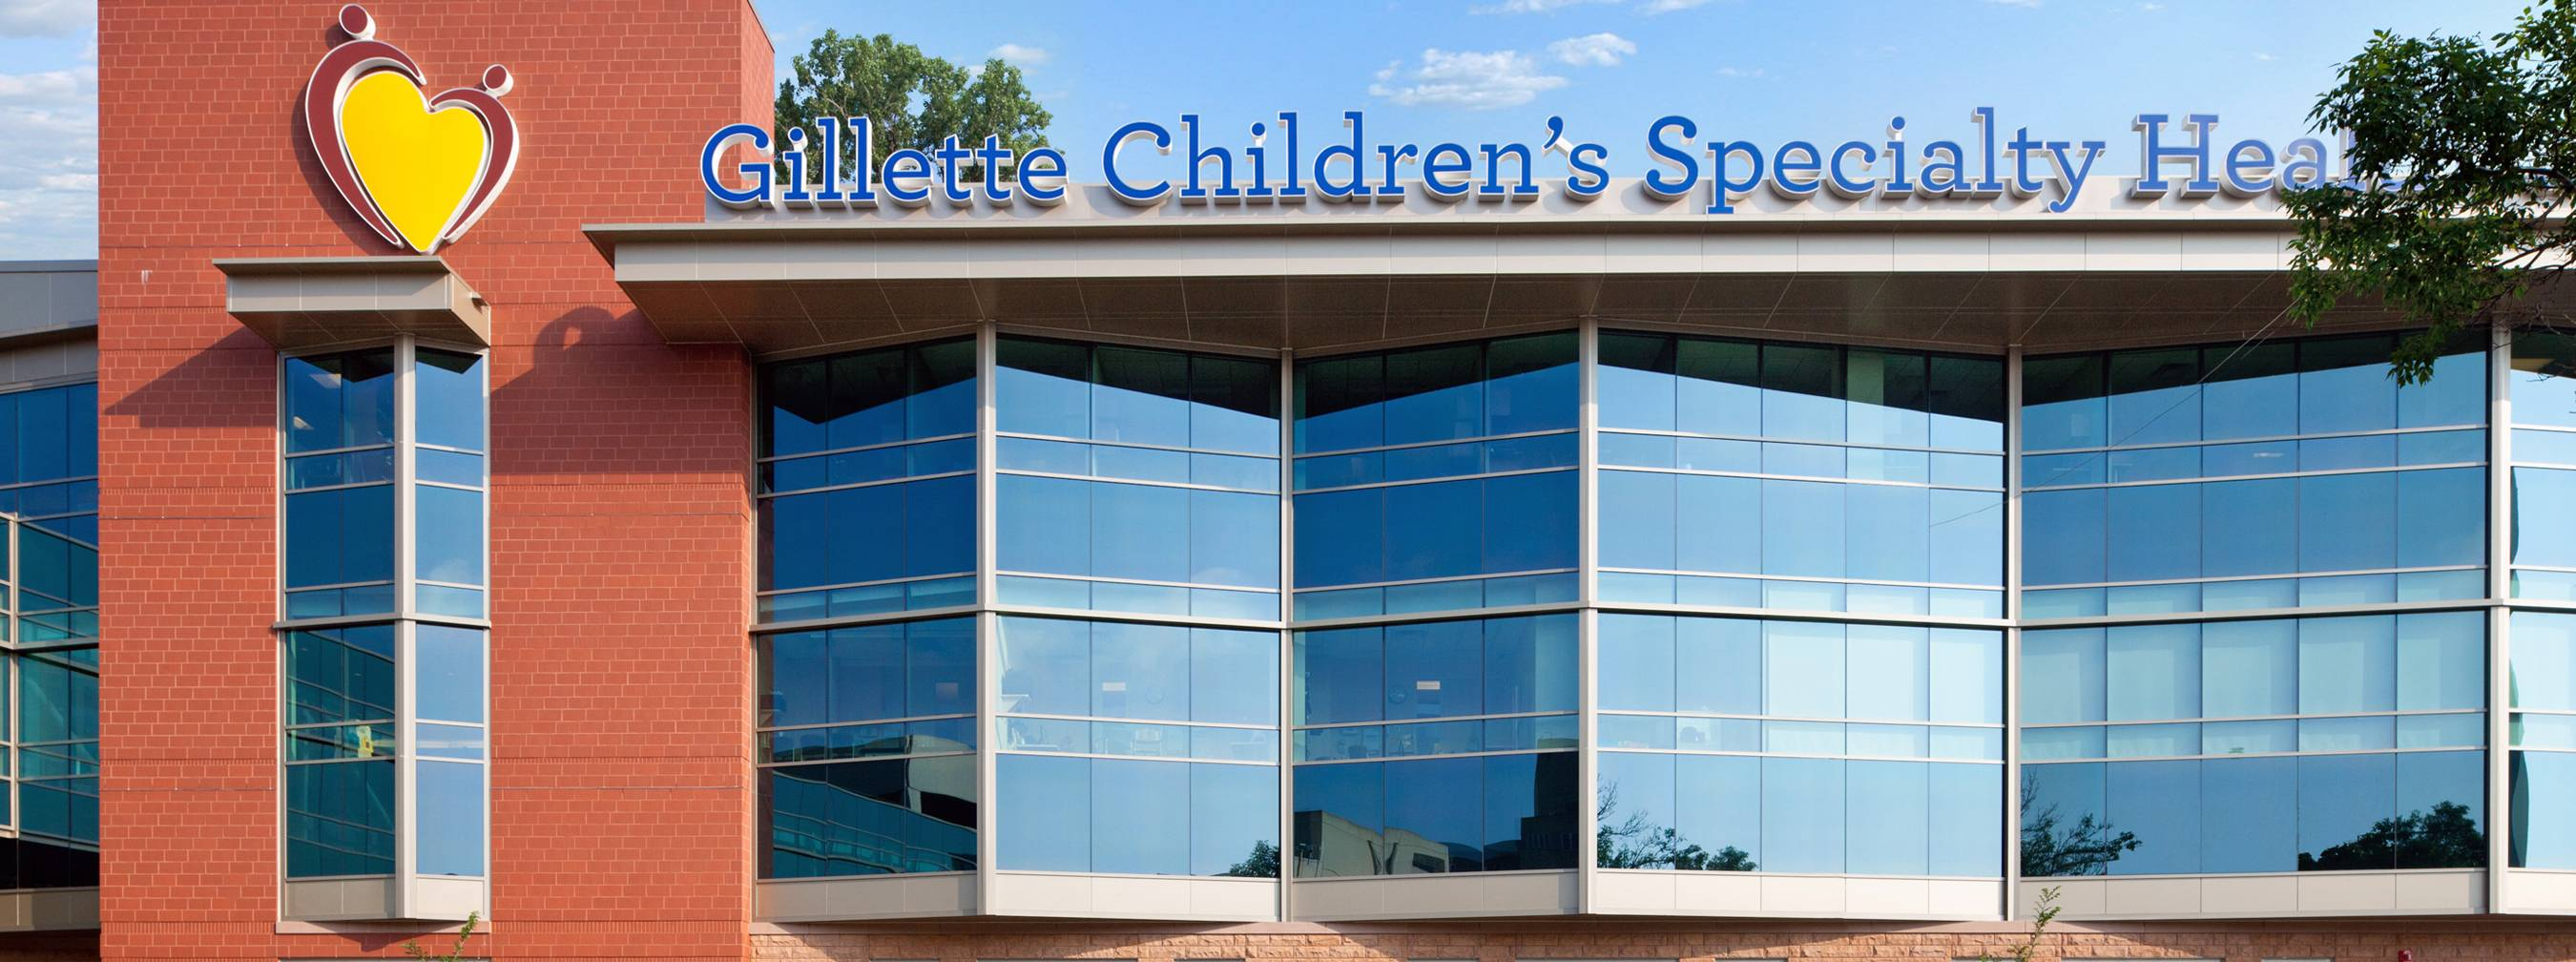 St. Paul Campus Gillette Children's building exterior